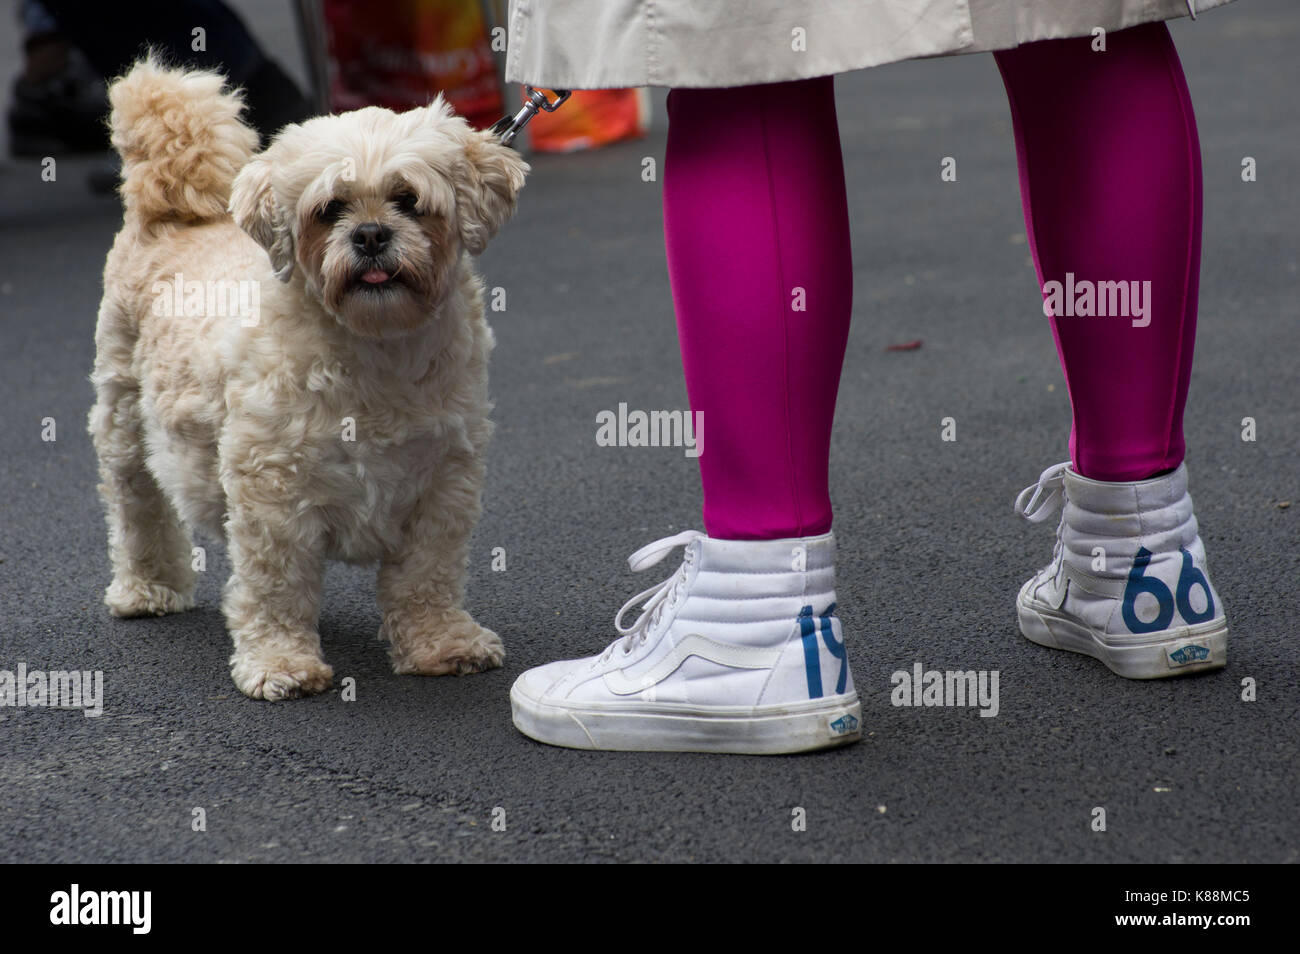 Woman's legs with hot pink or fuscia stockings and white tennis shoes with the year 1966 on them standing next - Stock Image